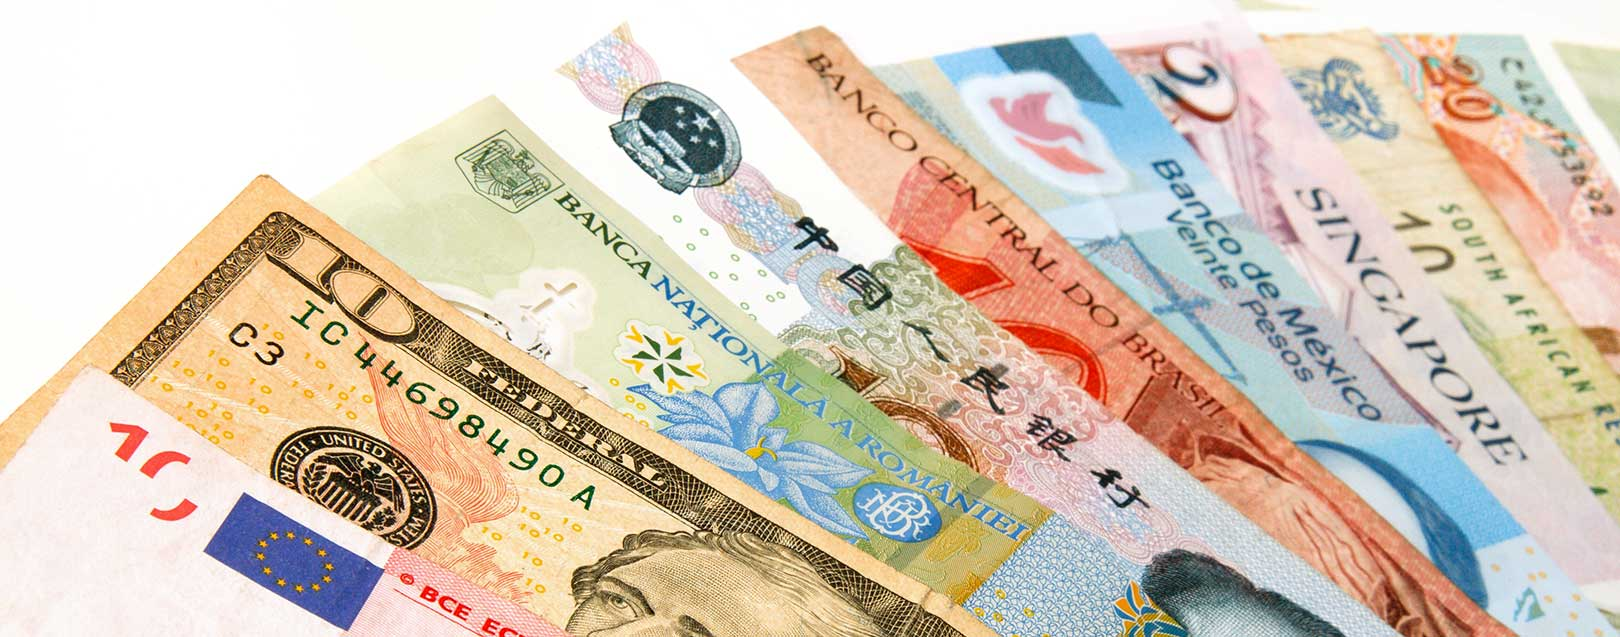 US puts 6 nations on monitoring list for currency practices